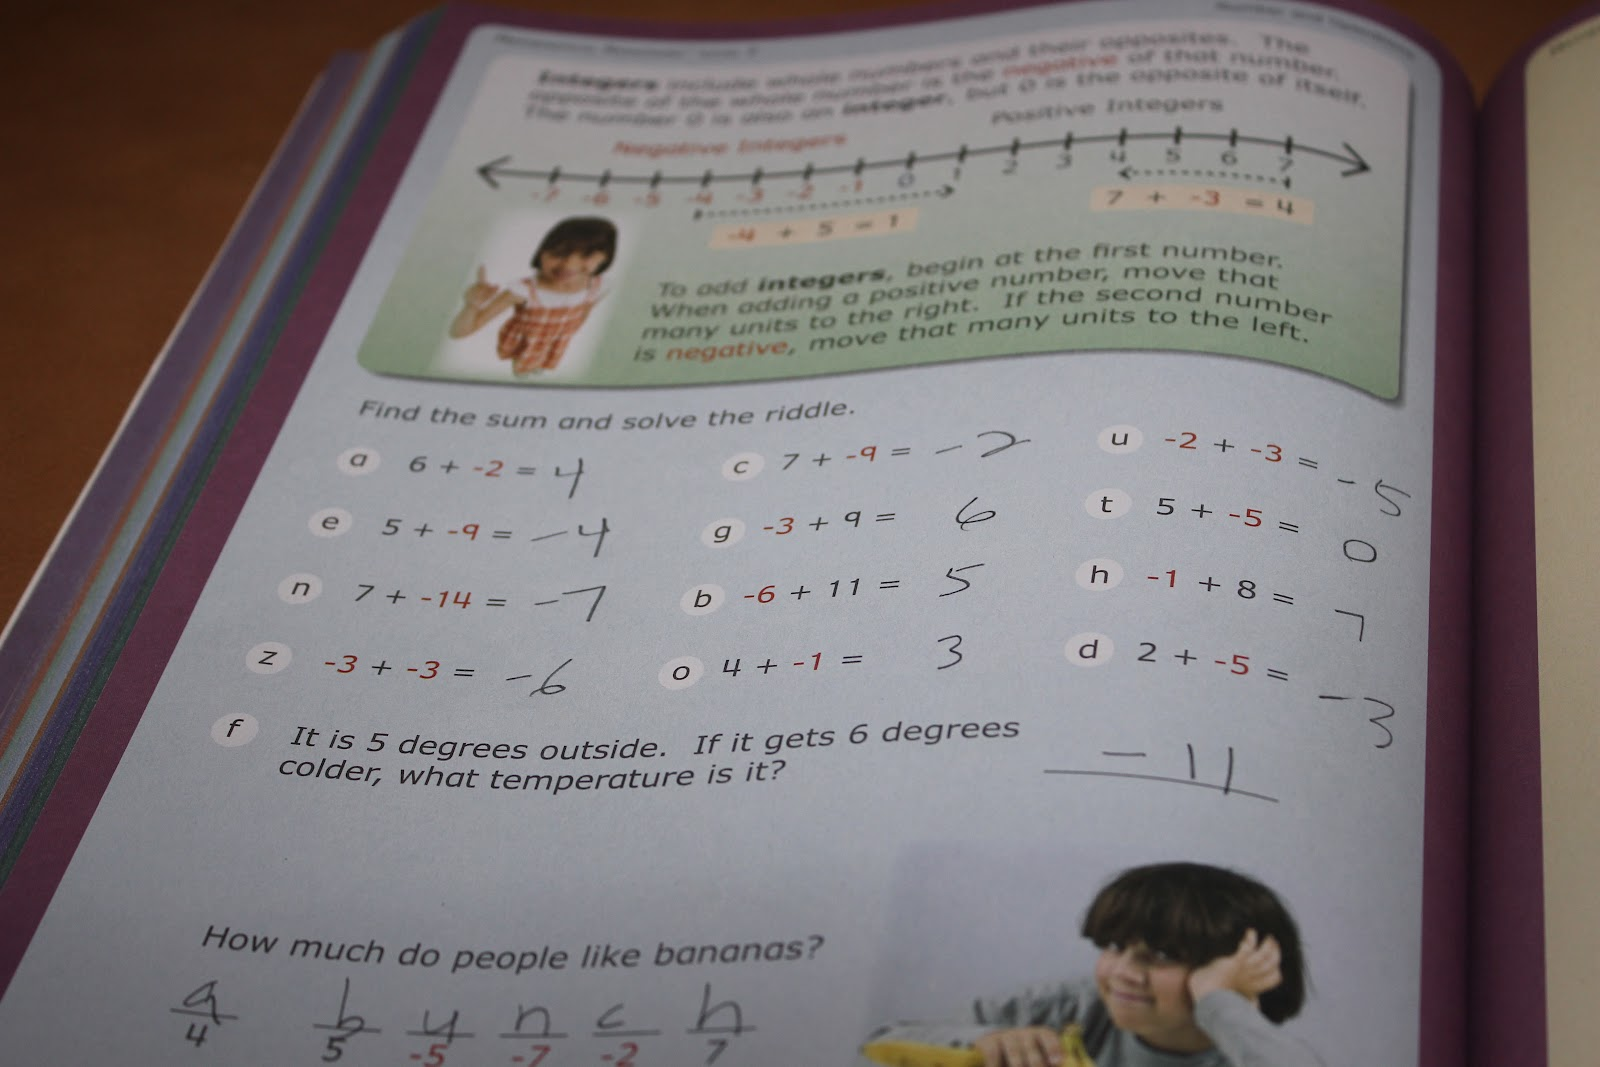 critical thinking company math reviews Critical thinking company review math analogies beginning uses clear, concise images which your child uses to solve the logic problem there are 3 images, and then underneath the pattern there are four images for your child to choose from to finish the equation in the math analogies beginning there.